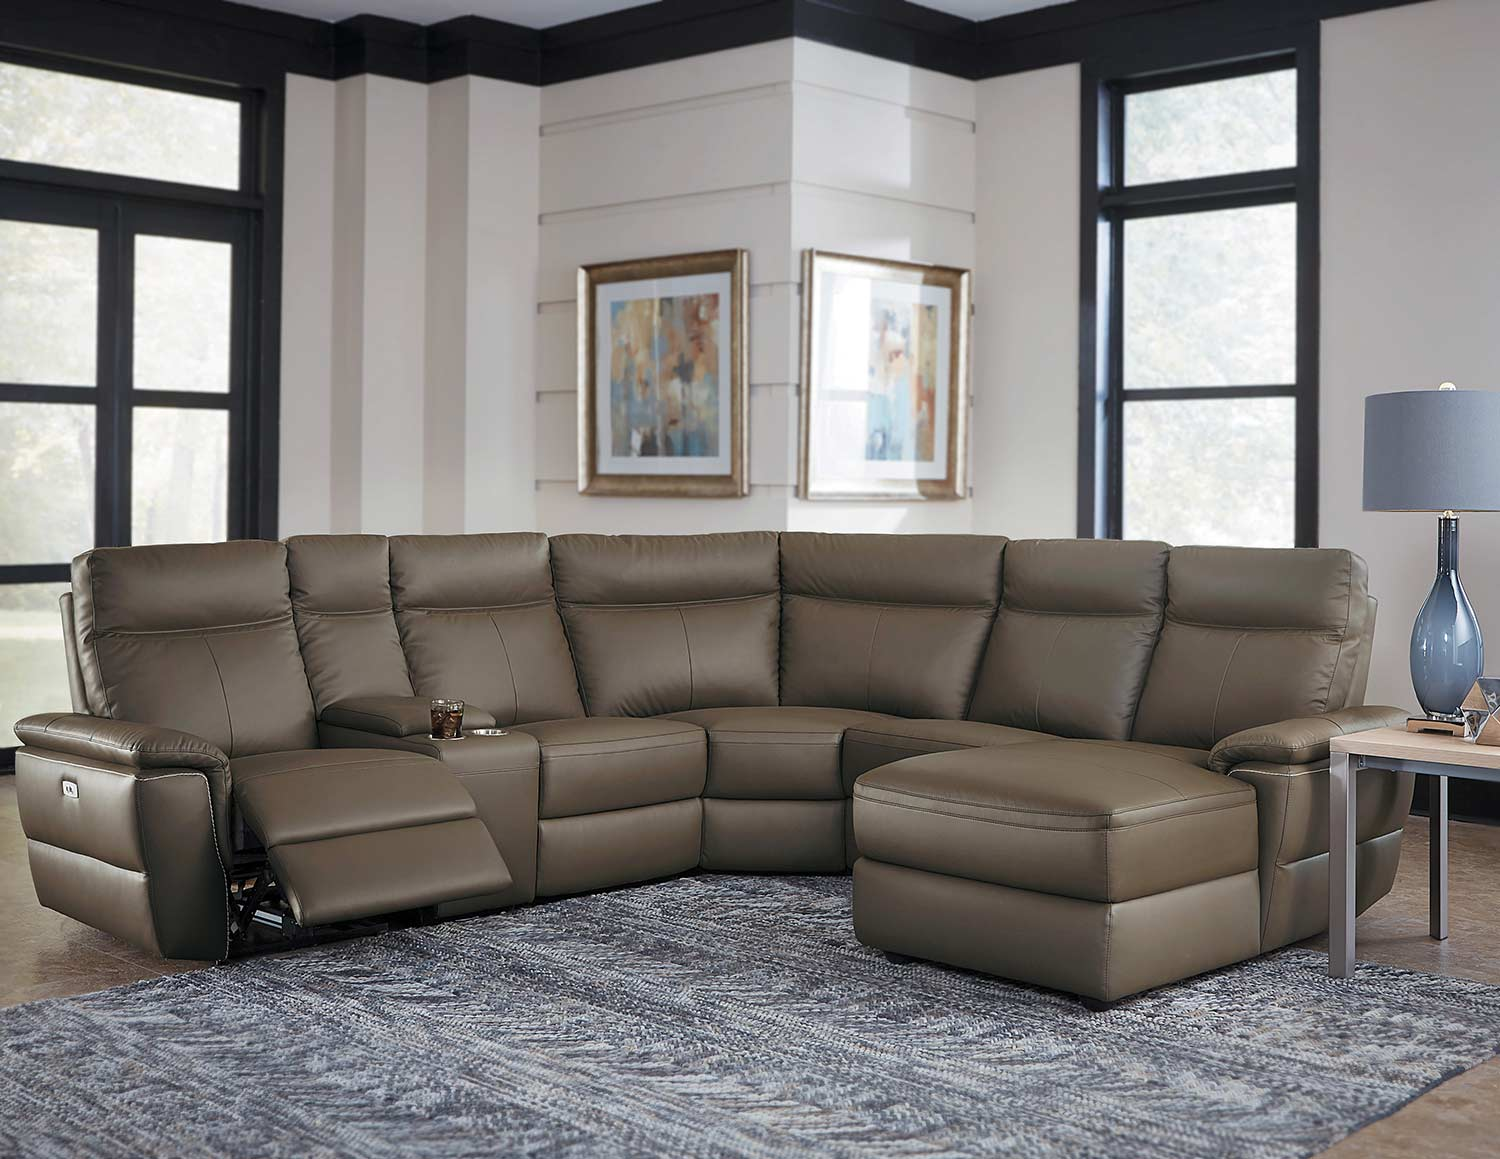 Homelegance Olympia Reclining Sectional Set - Raisin Top Grain Leather Match